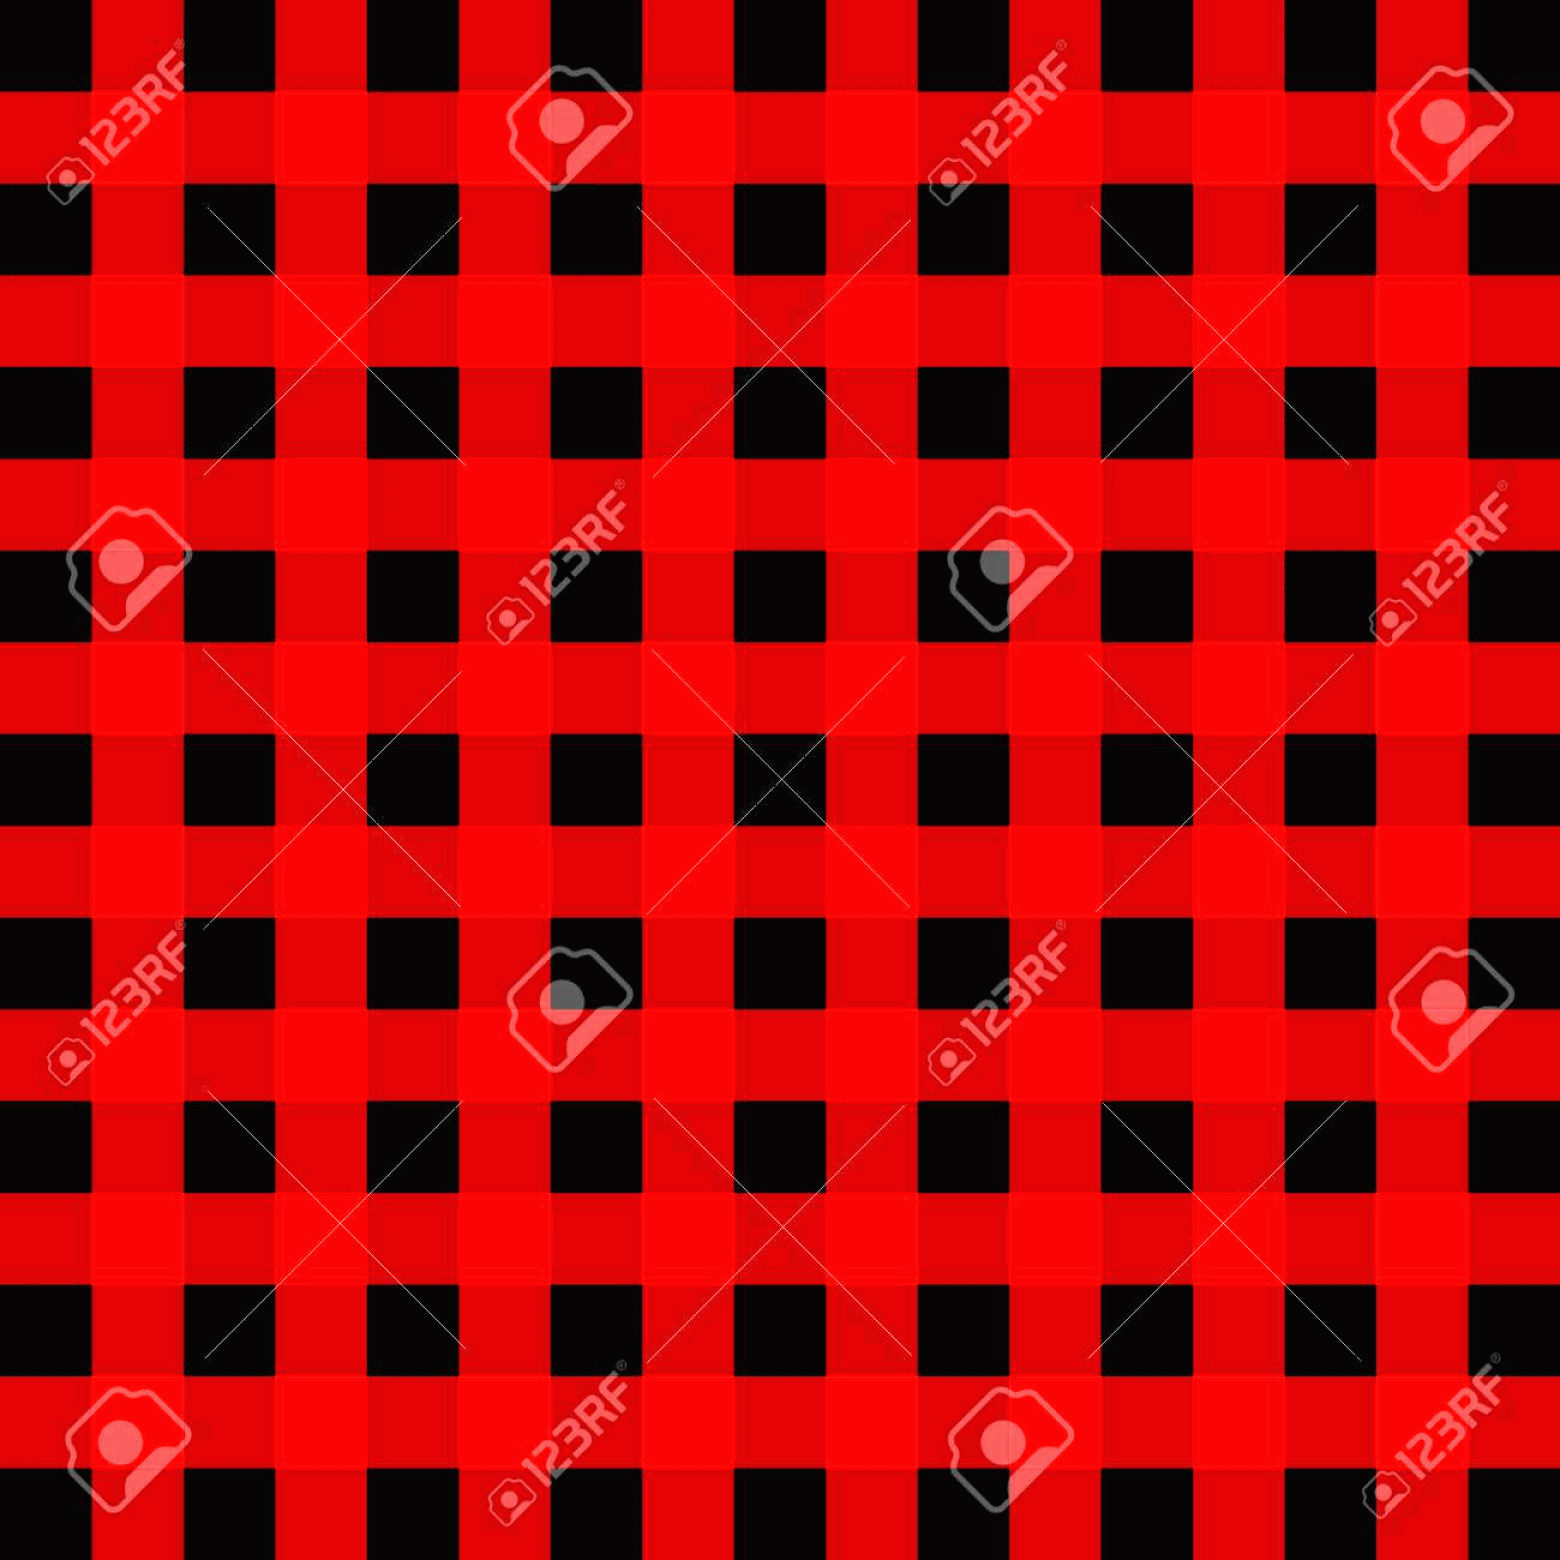 Plaid Vector: Photostock Vector Scottish Cage Red Celtic Scottish Red Checkered Background Lumberjack Plaid Vector Illustration